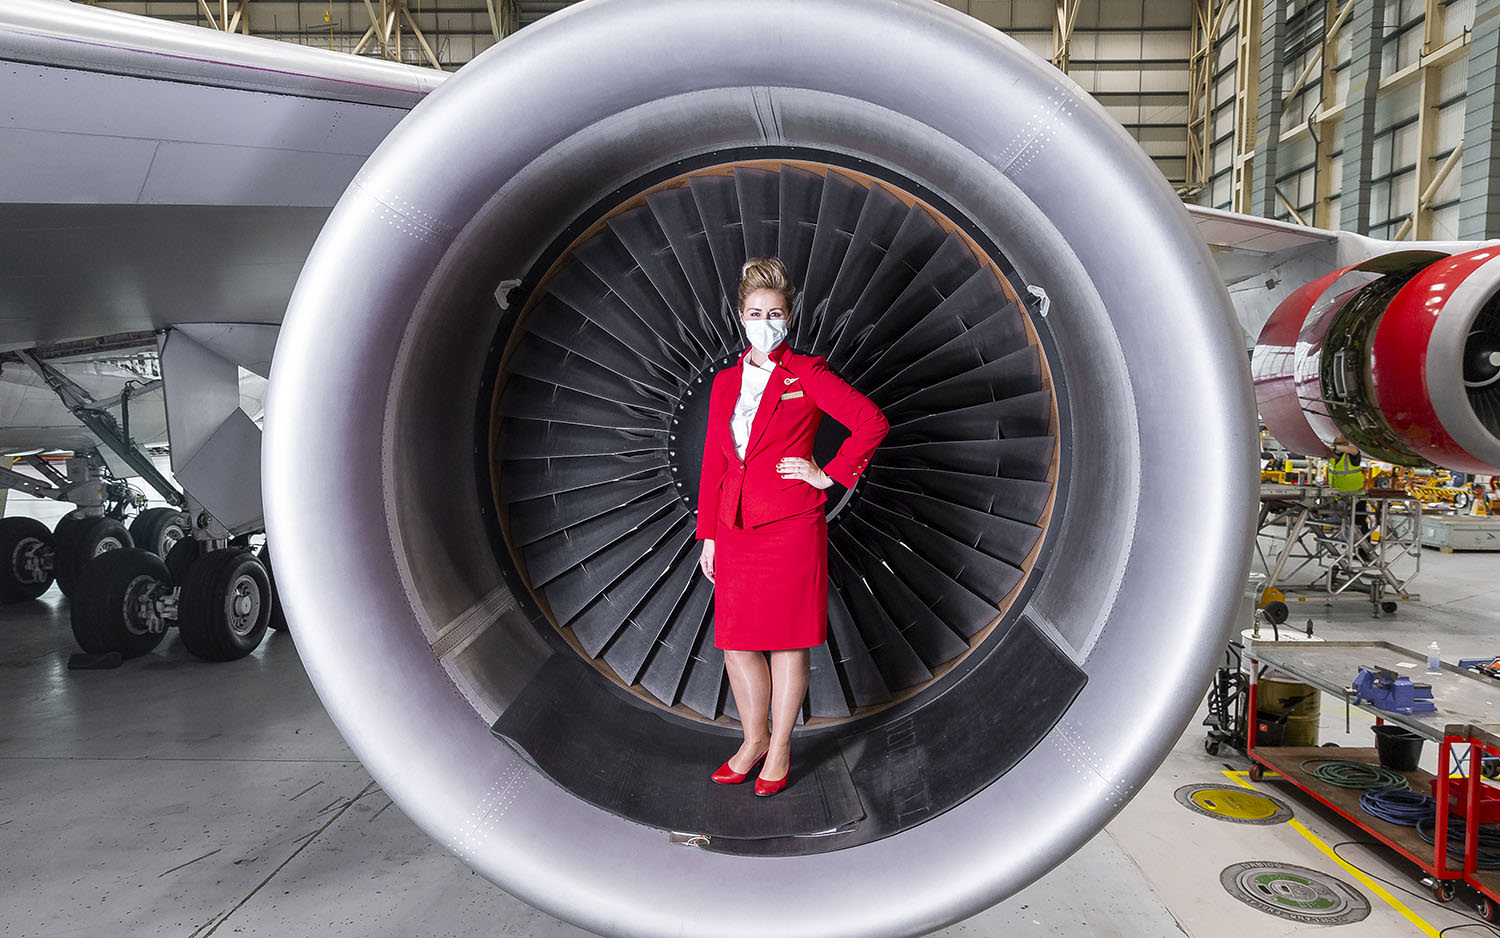 A cabin crew member poses for a photo inside a Boeing 747 engine